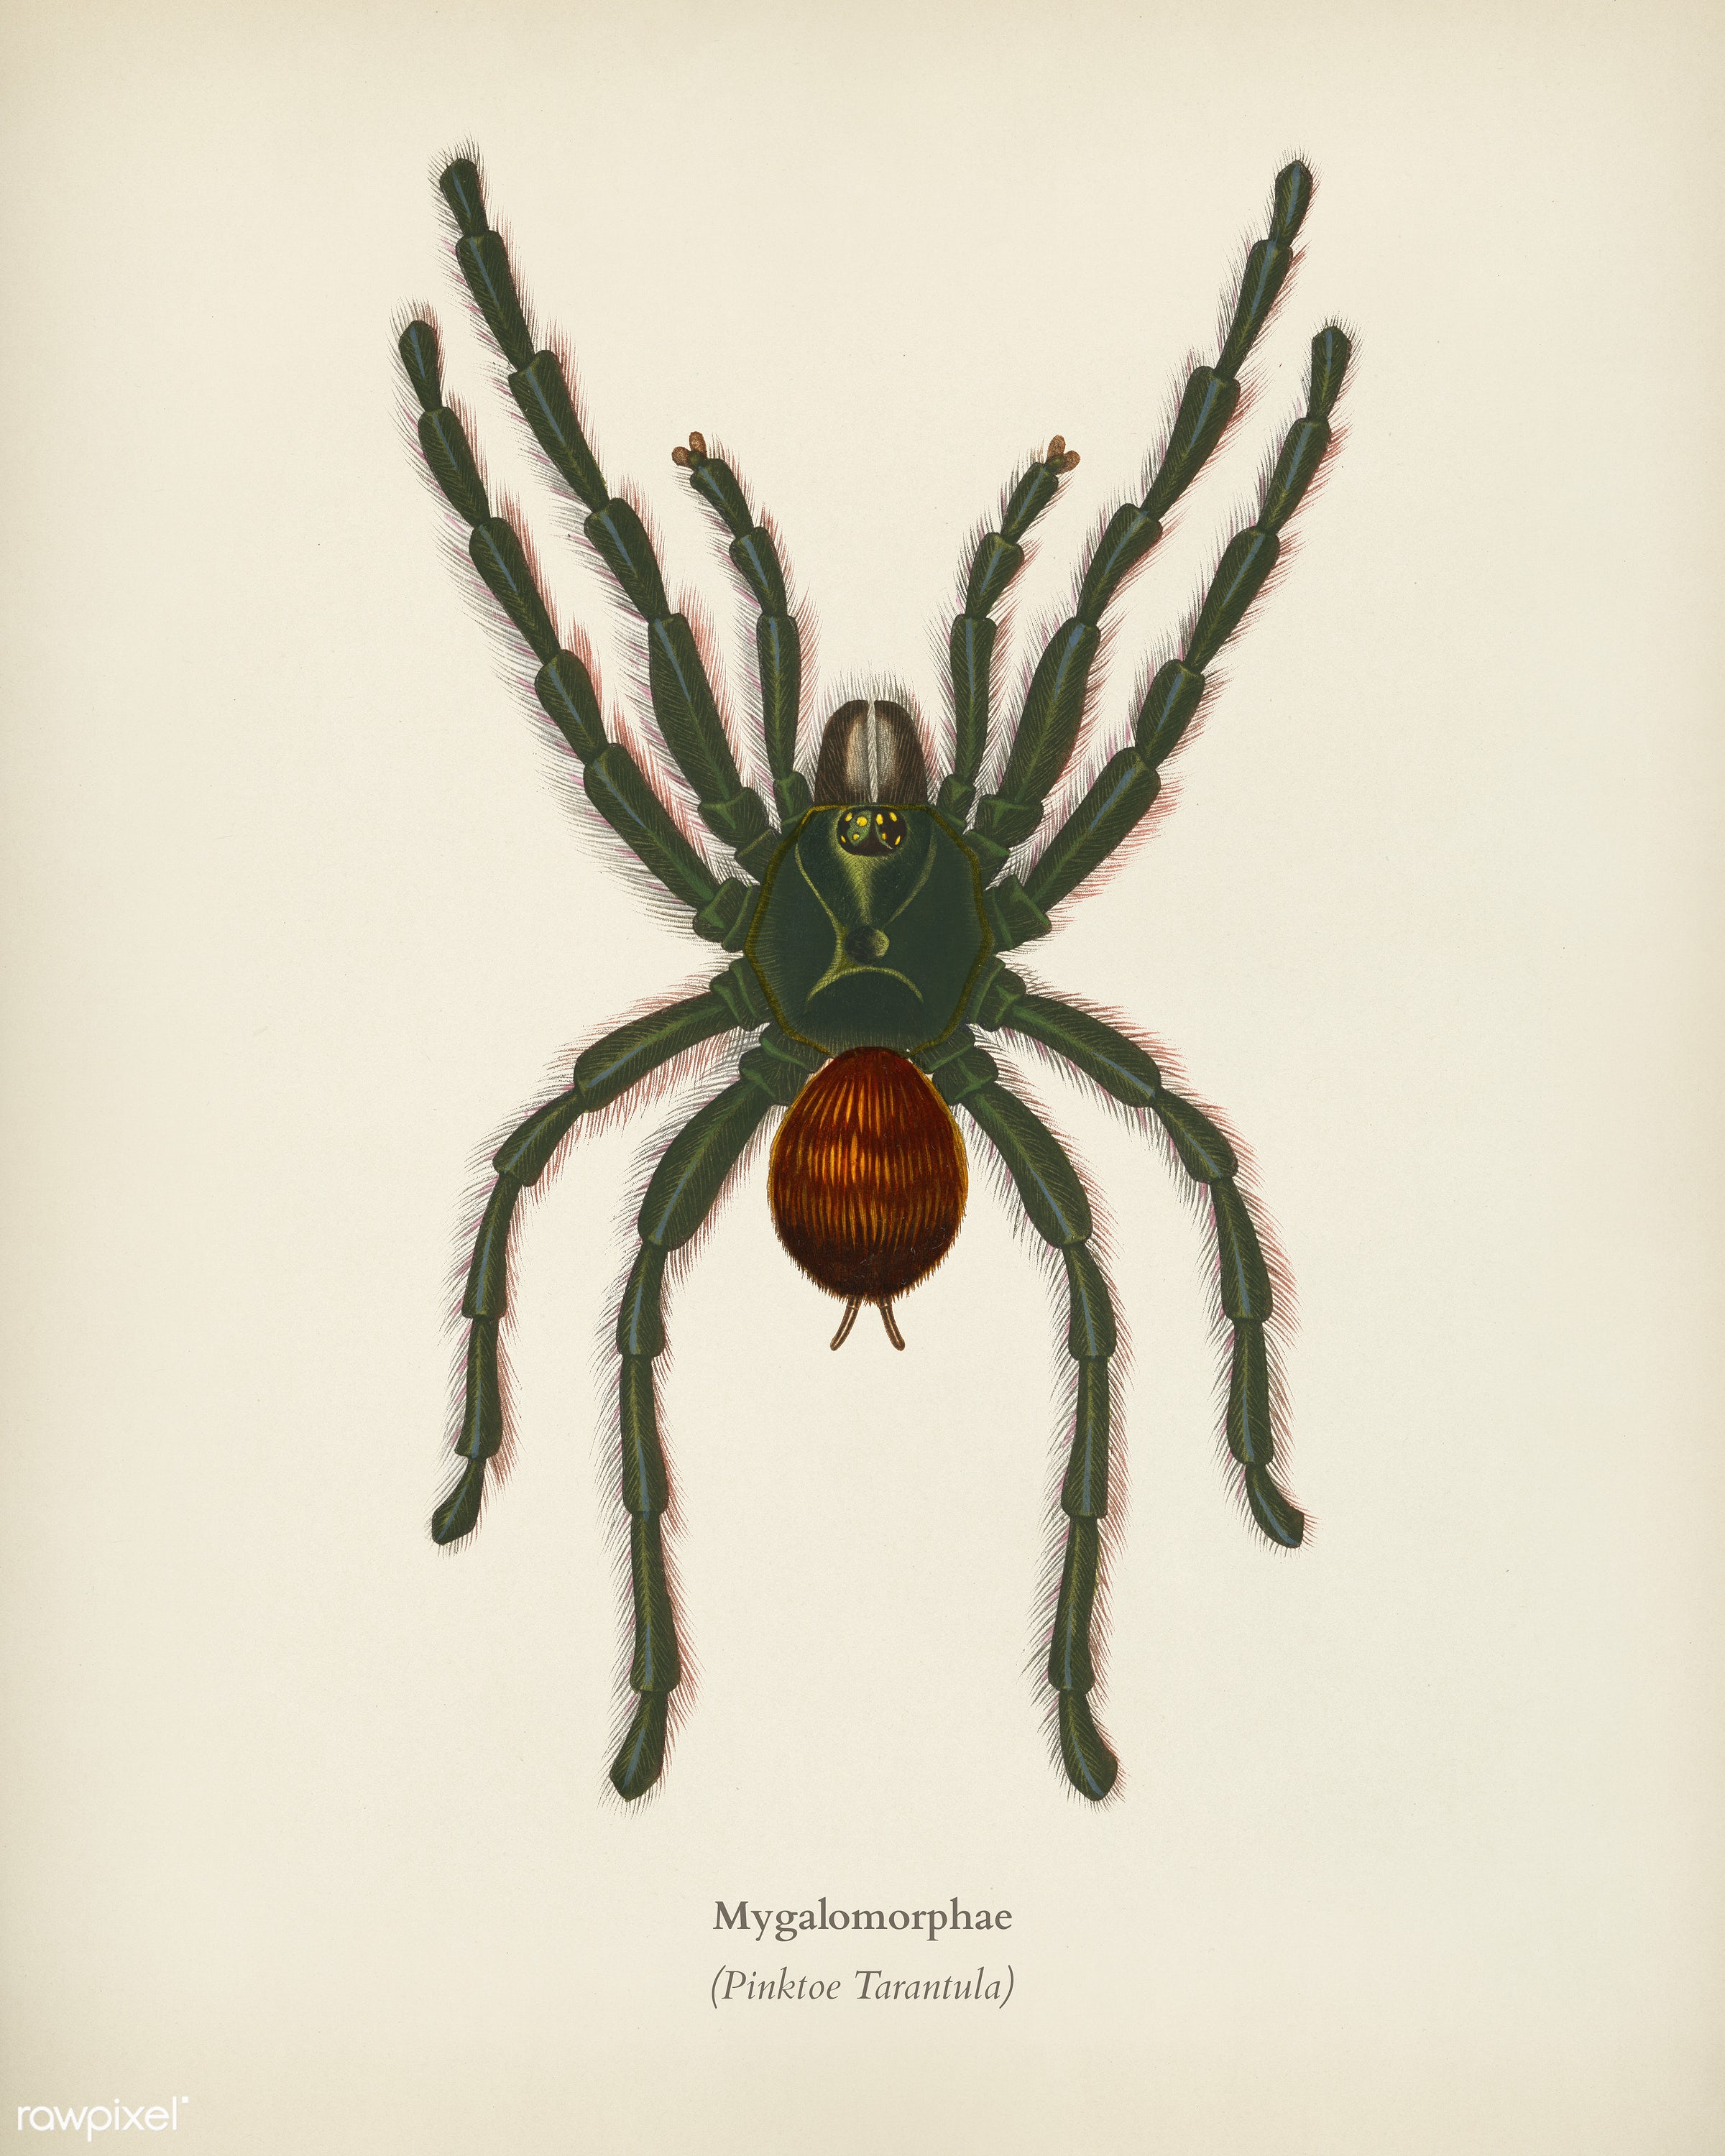 Pinktoe tarantula (Mygalomorphae) illustrated by Charles Dessalines D' Orbigny (1806-1876). Digitally enhanced from our...